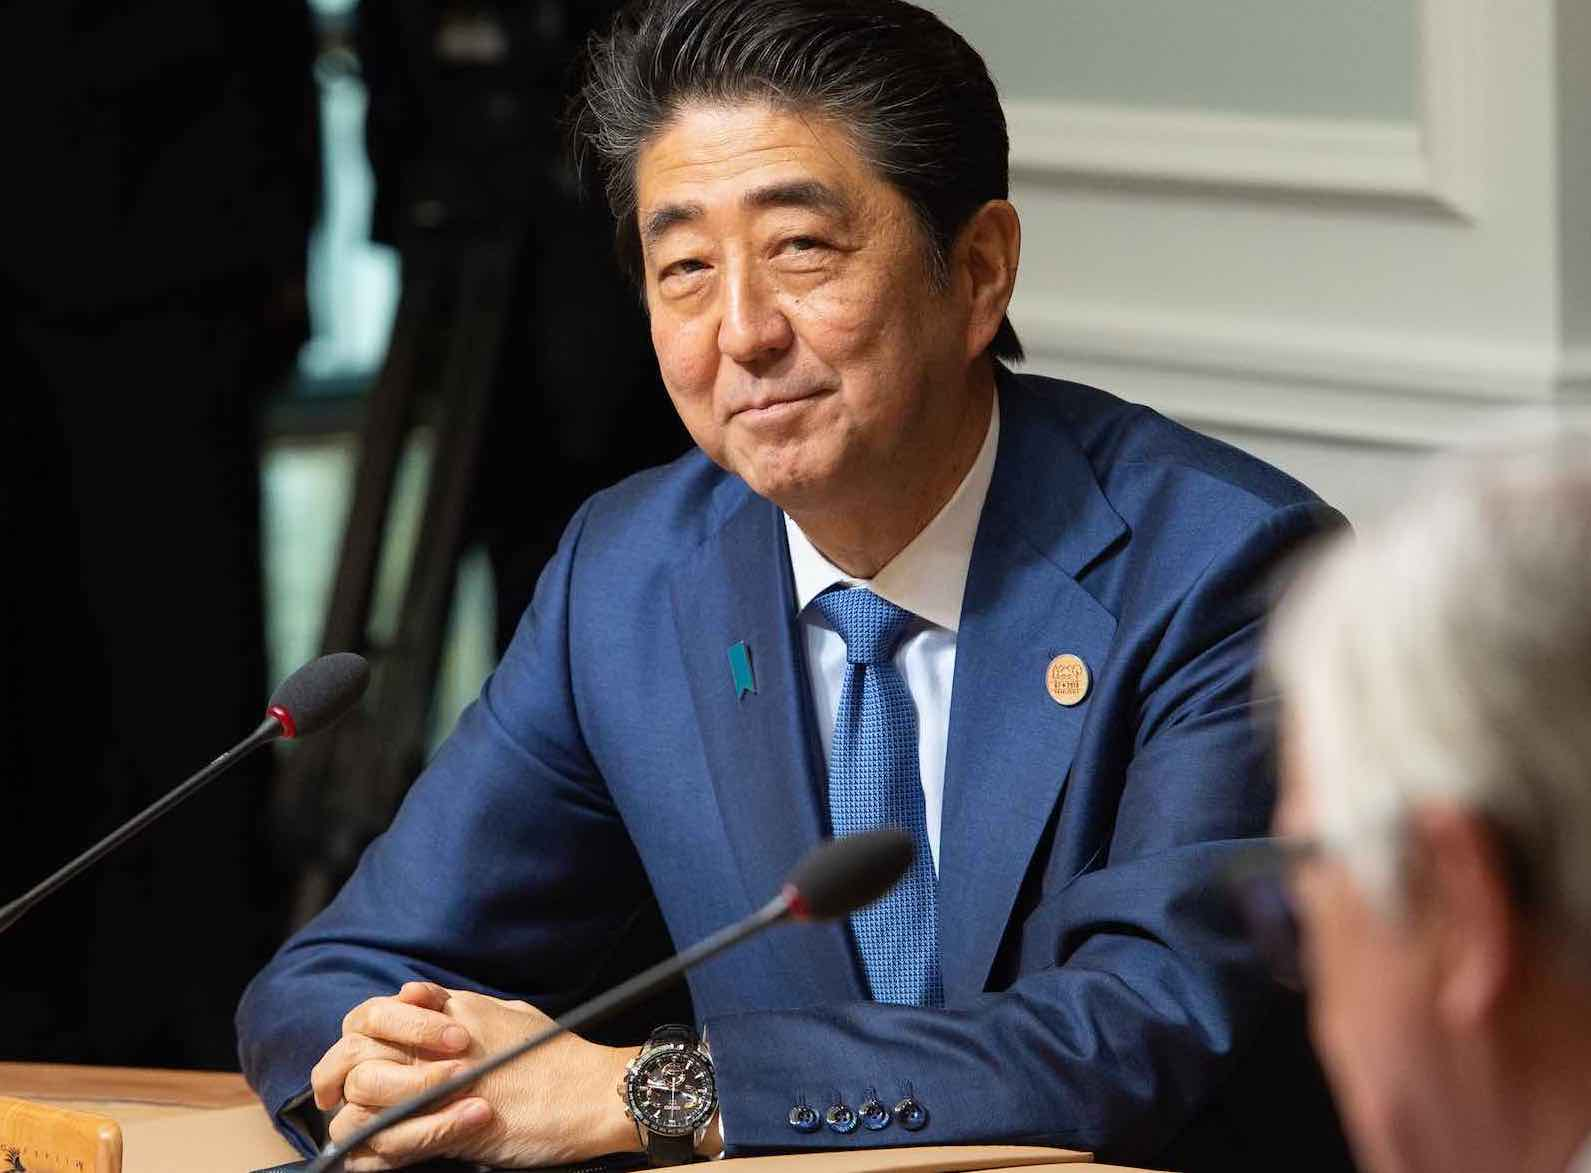 Japanese Prime Minister Shinzo Abe at the G7 summit (Photo: #G7Charlevoix/Flickr)